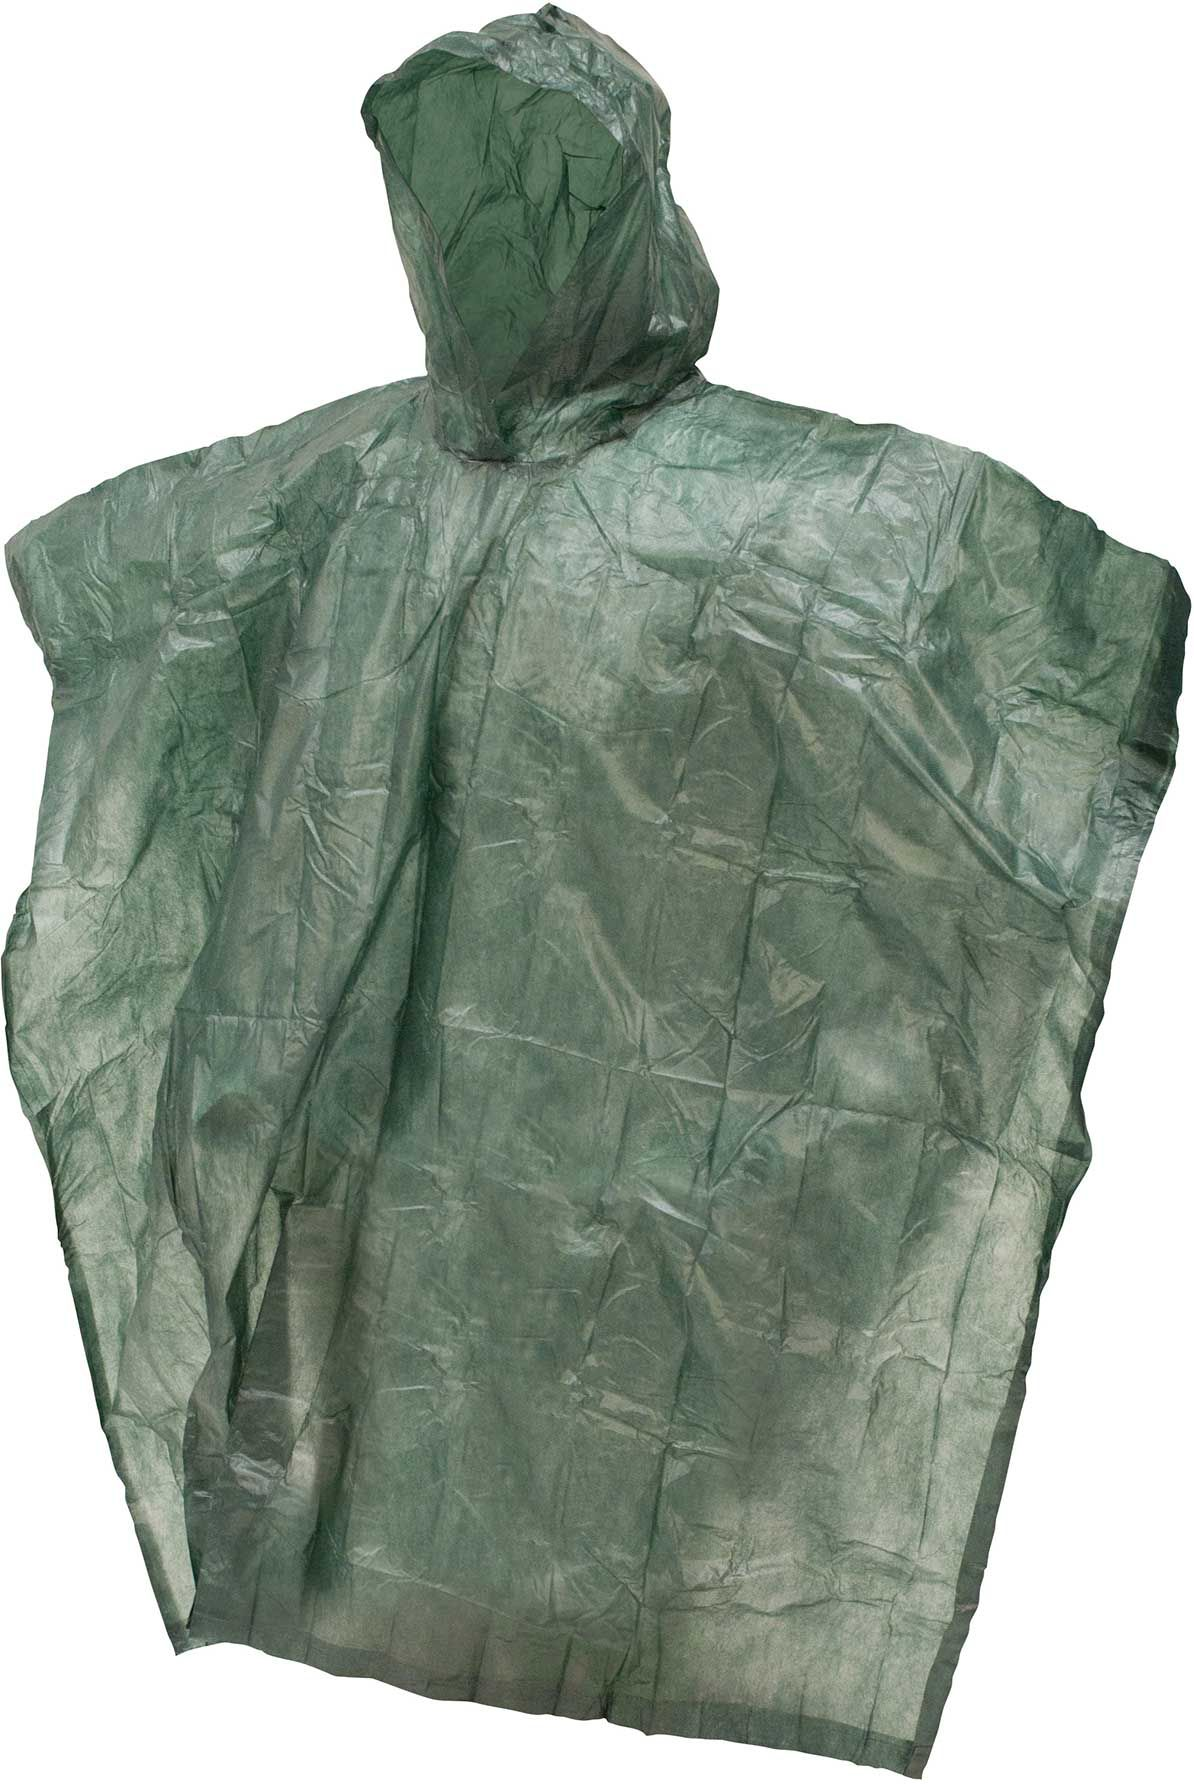 product image frogg toggs emergency poncho